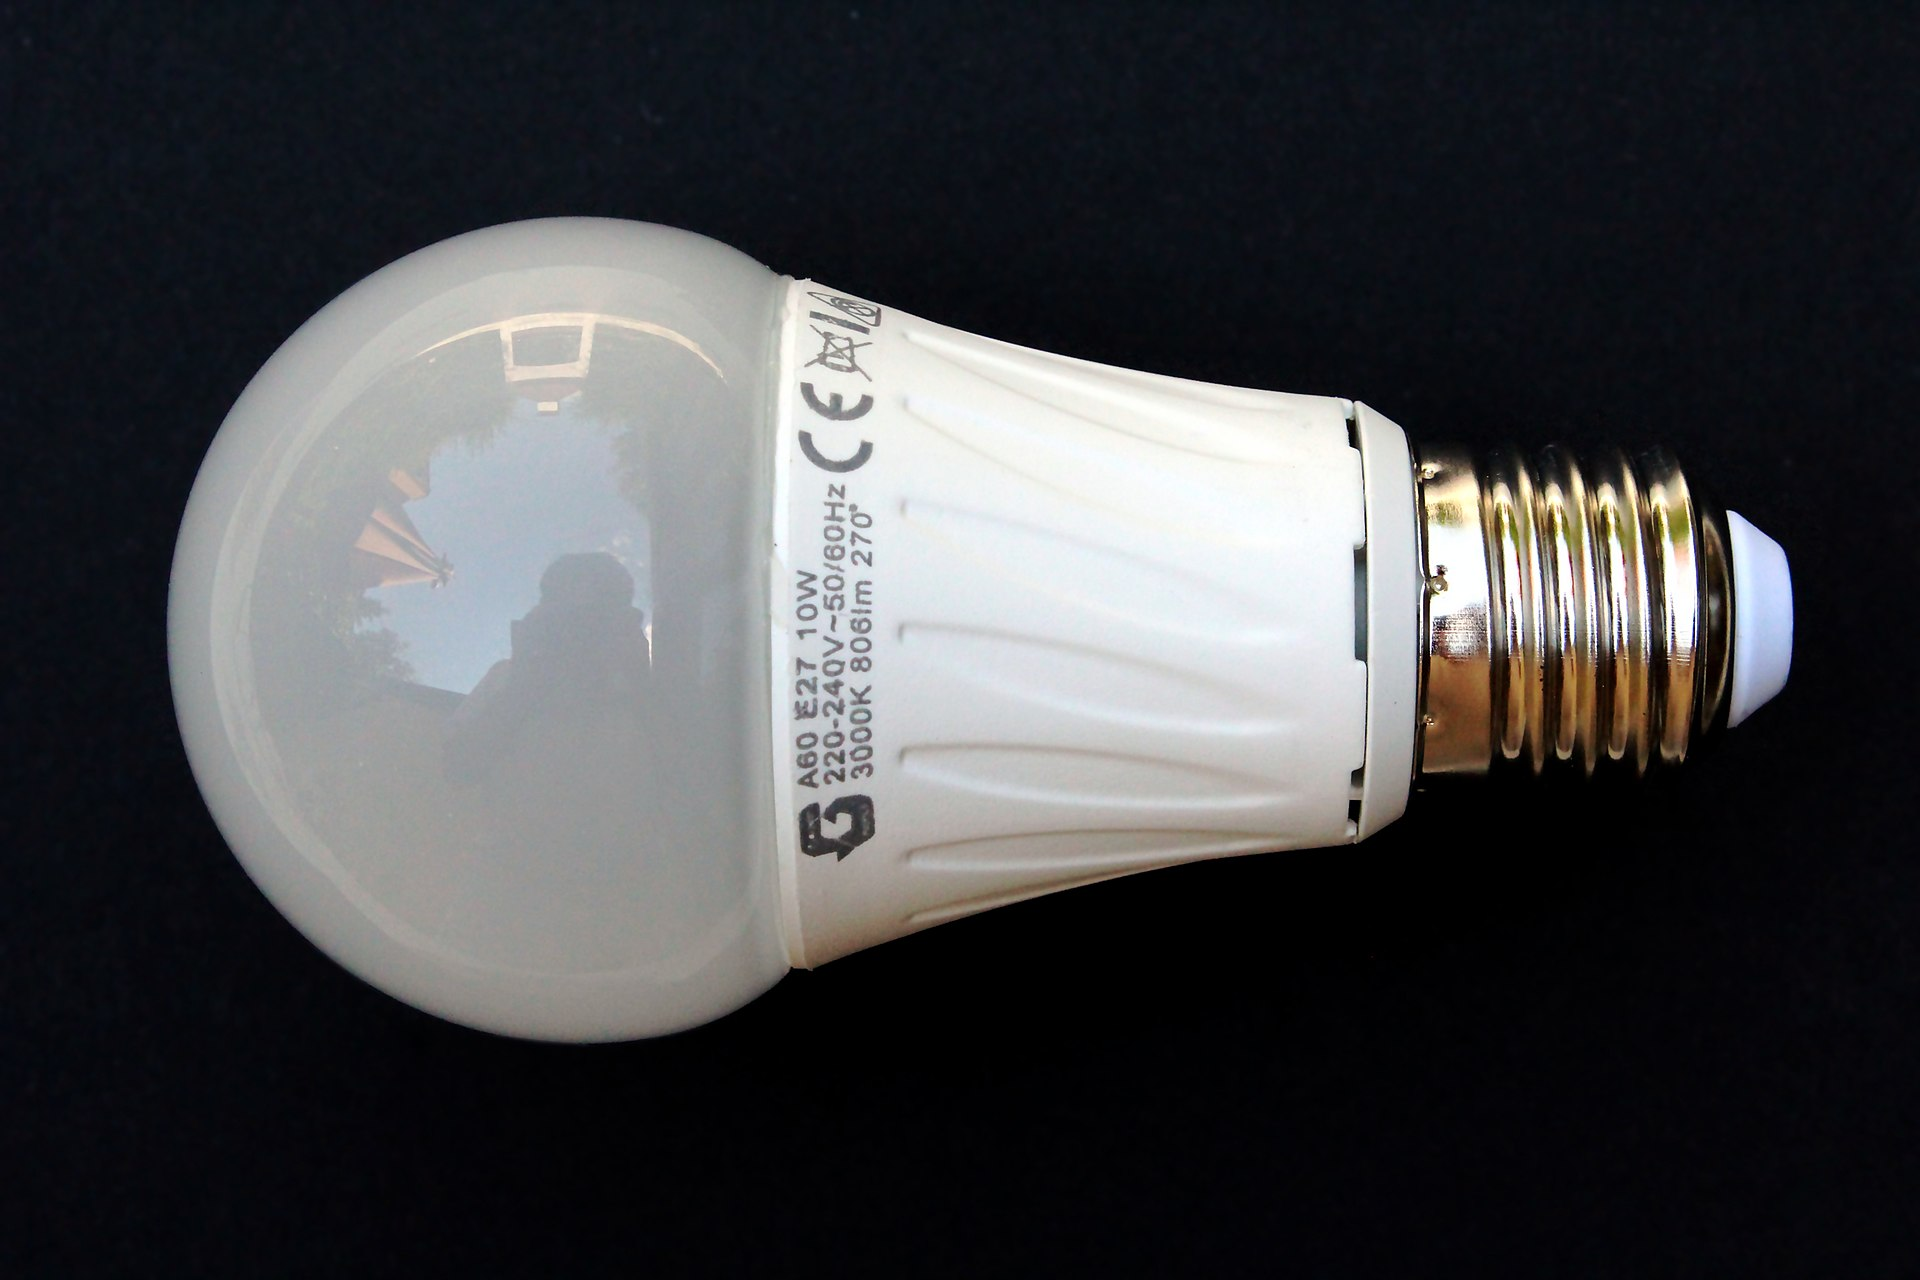 Led Lamp Wikipedia